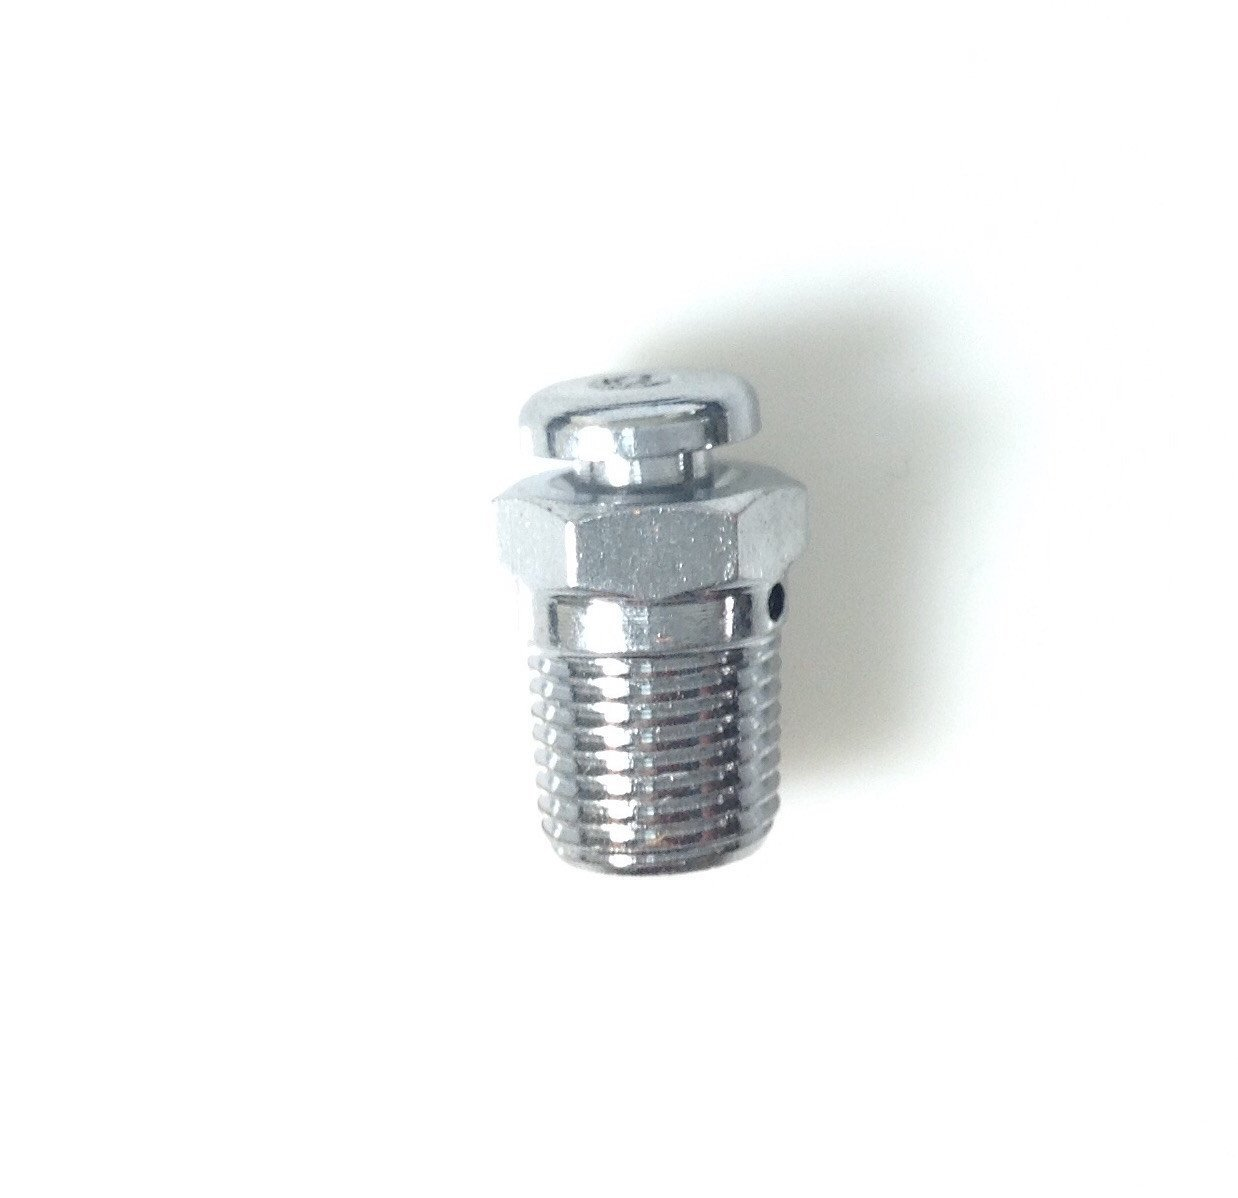 Fittings 5 pcs of 1-8 NPT Push Button Bleeder Valve - Air by Fittings